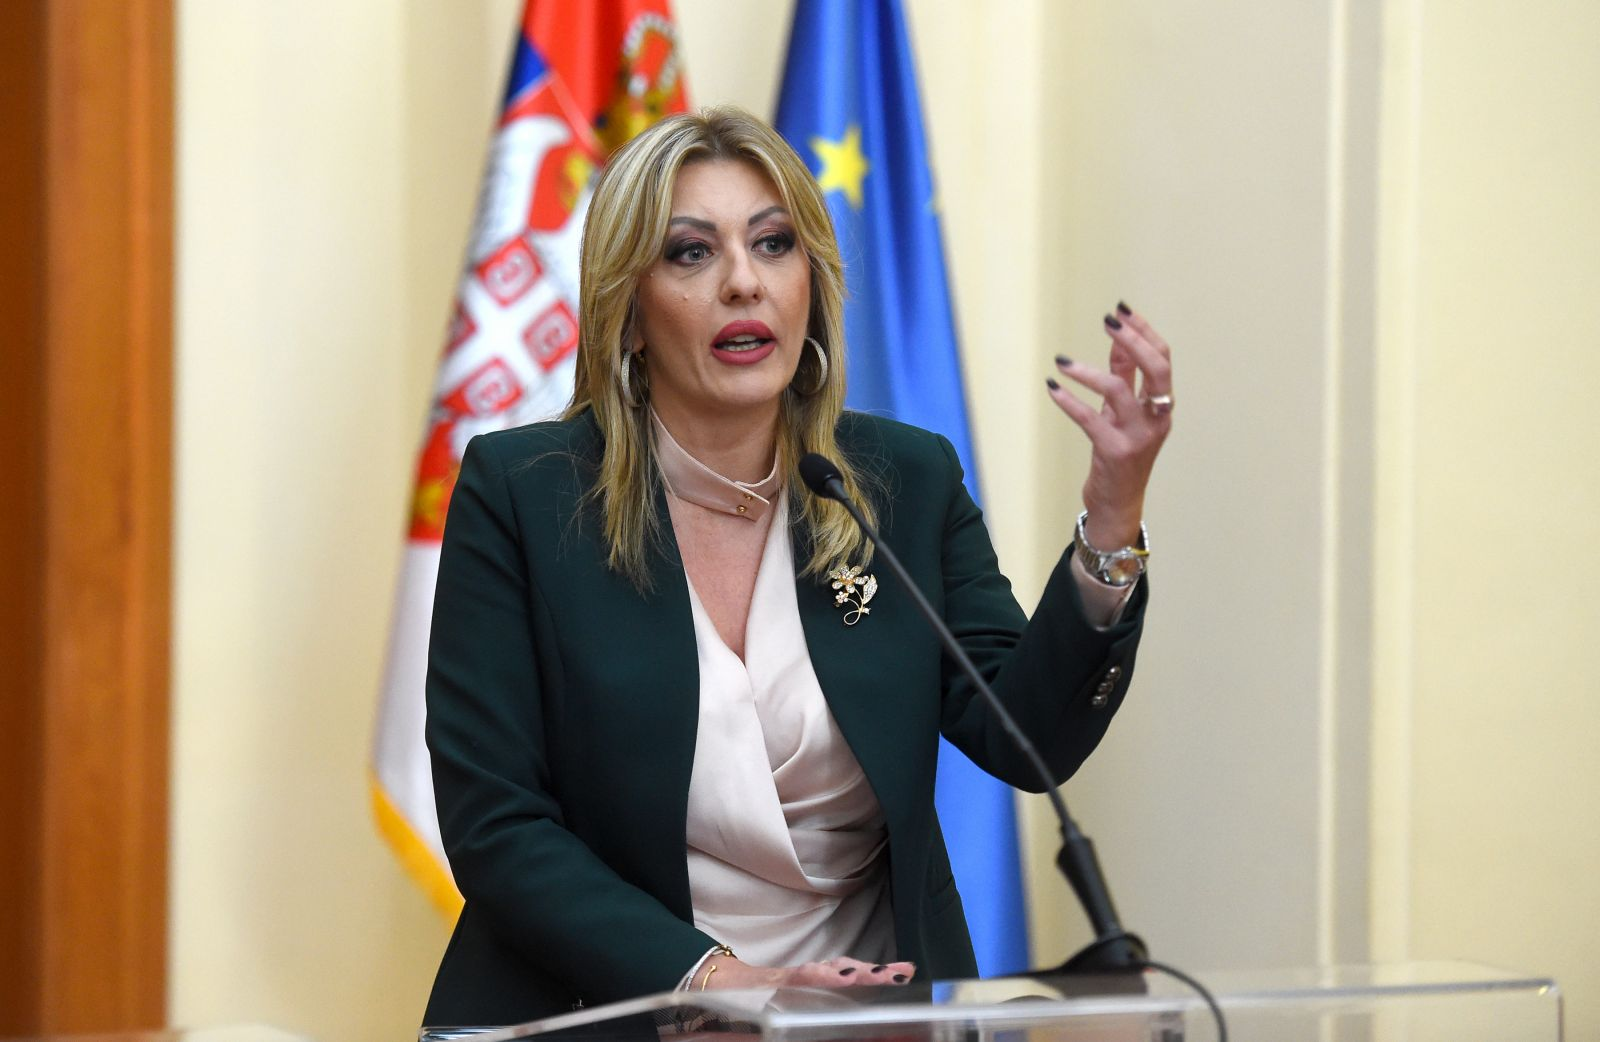 J. Joksimović: Important meeting between Vučić and Várhelyi